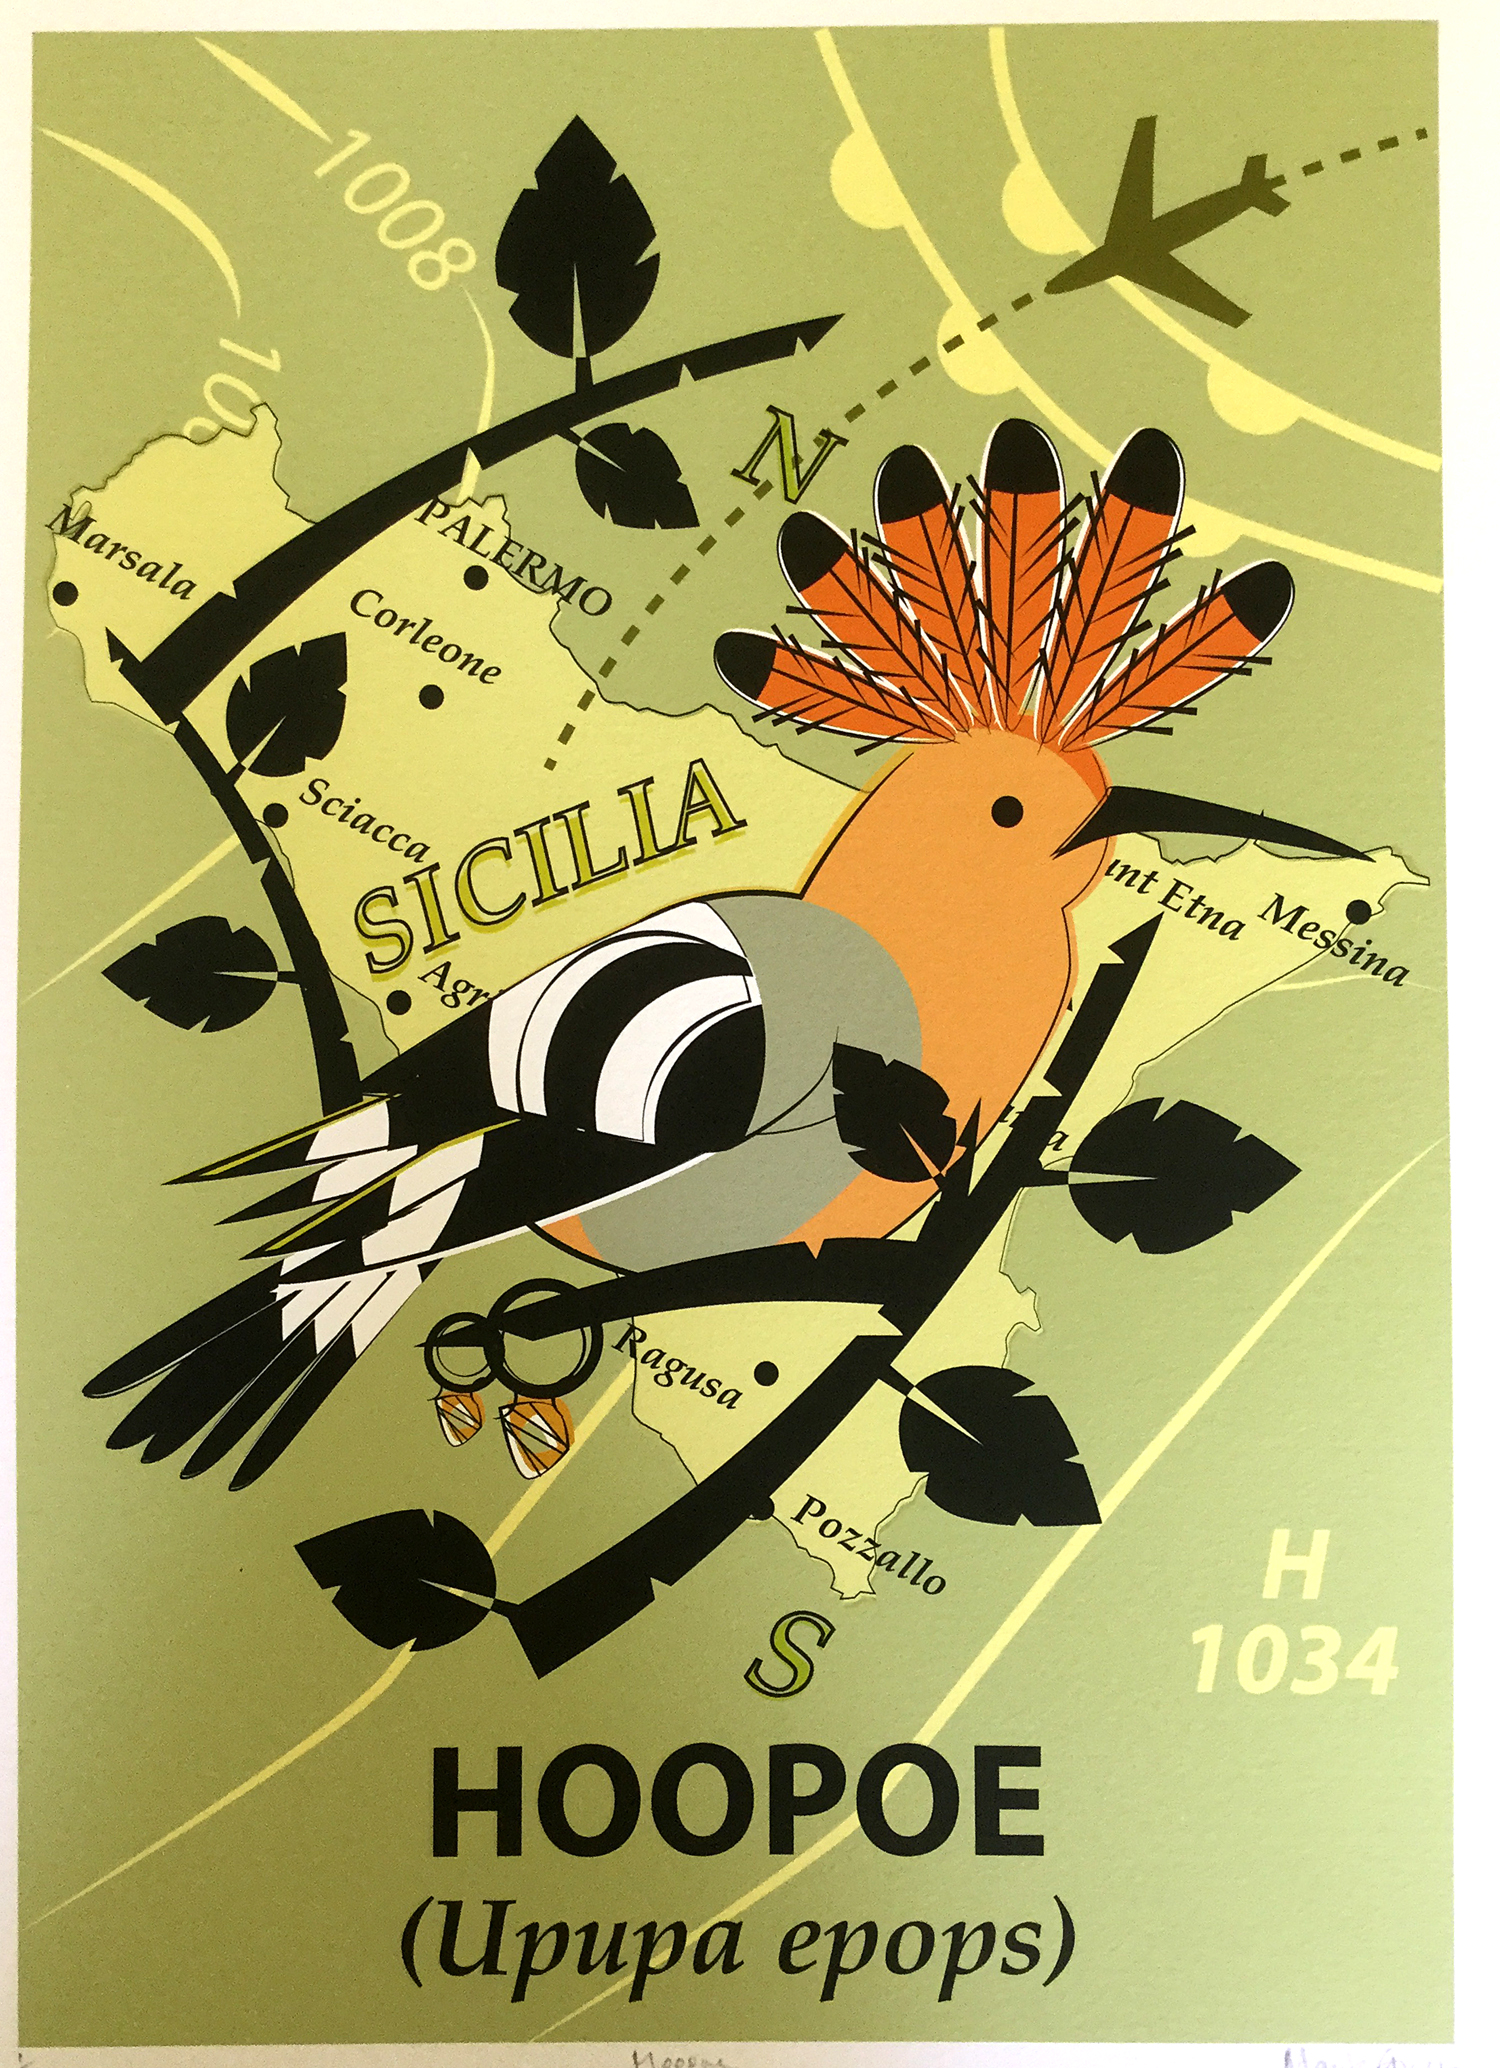 Hoopoe Giclée Print Commission 1/1